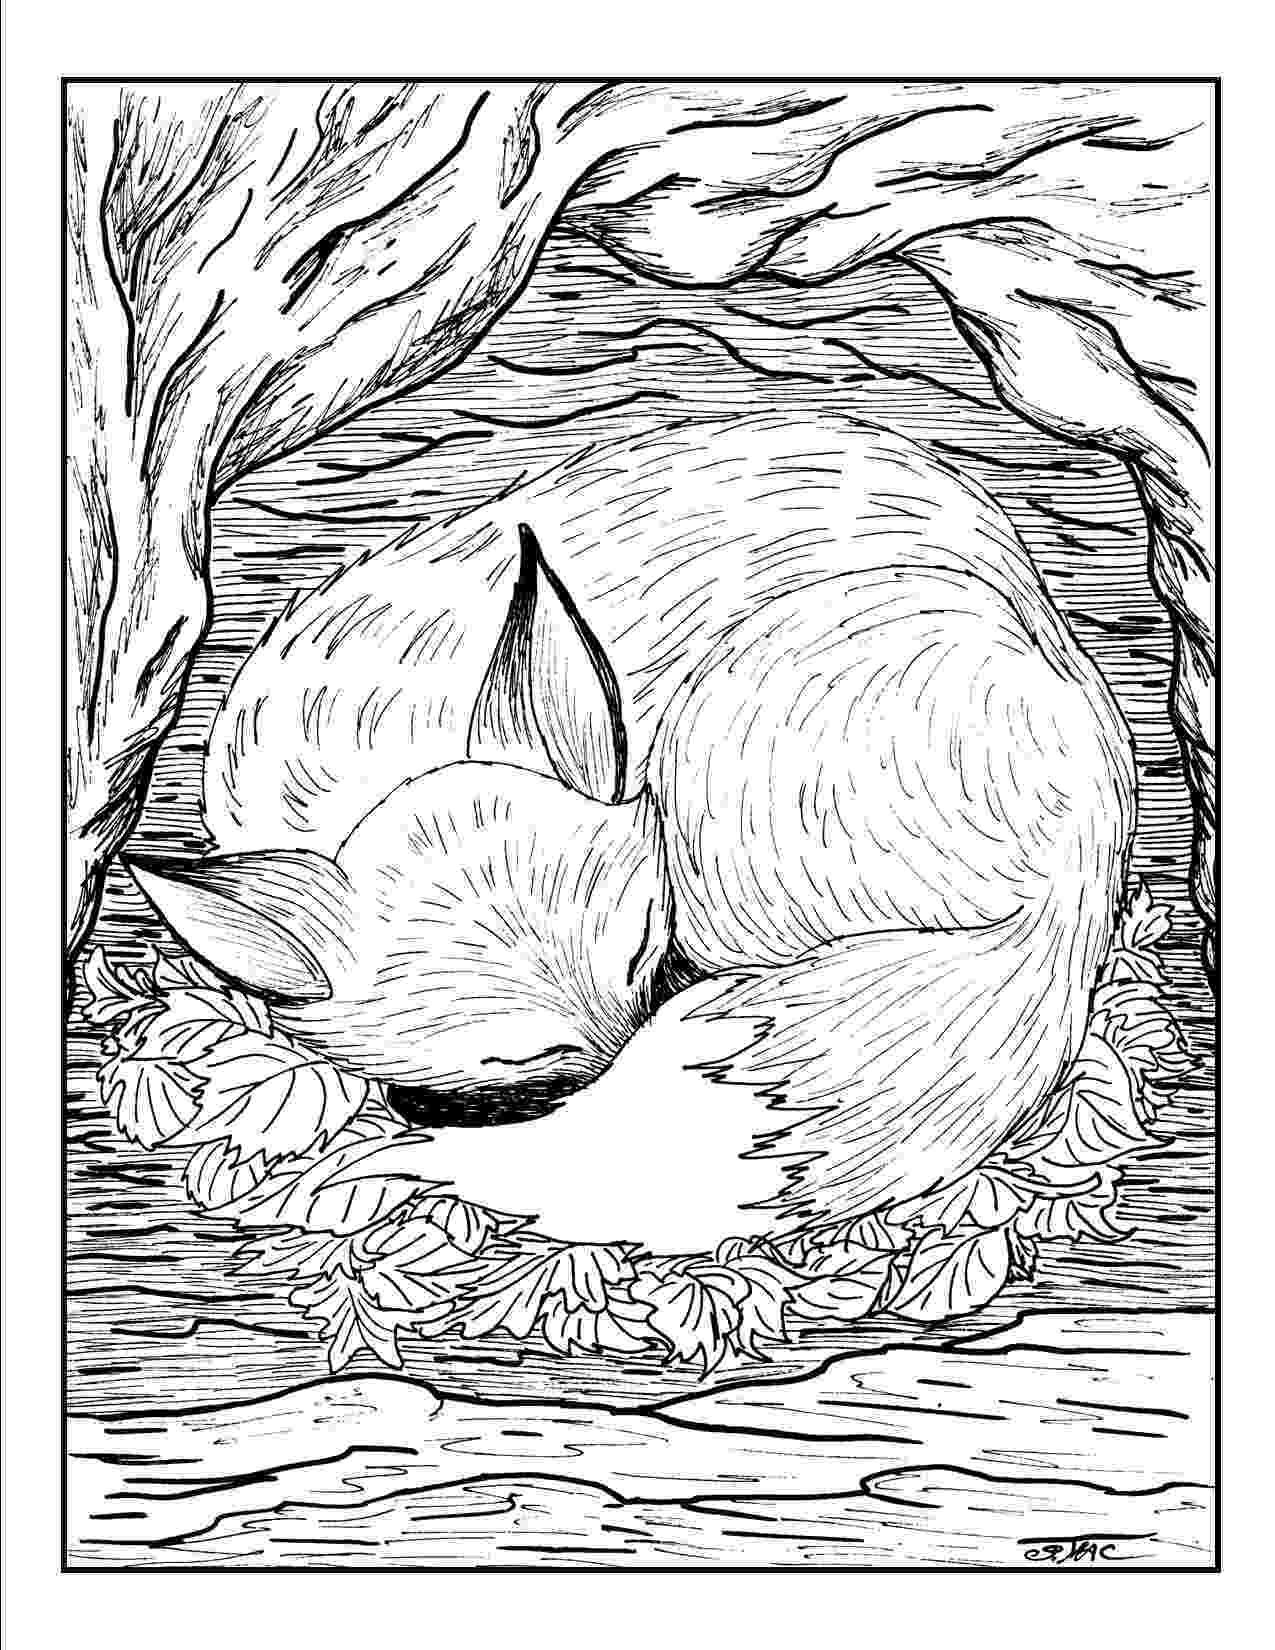 free printable coloring pages for adults nature nature coloring page getcoloringpagescom for nature free adults printable coloring pages